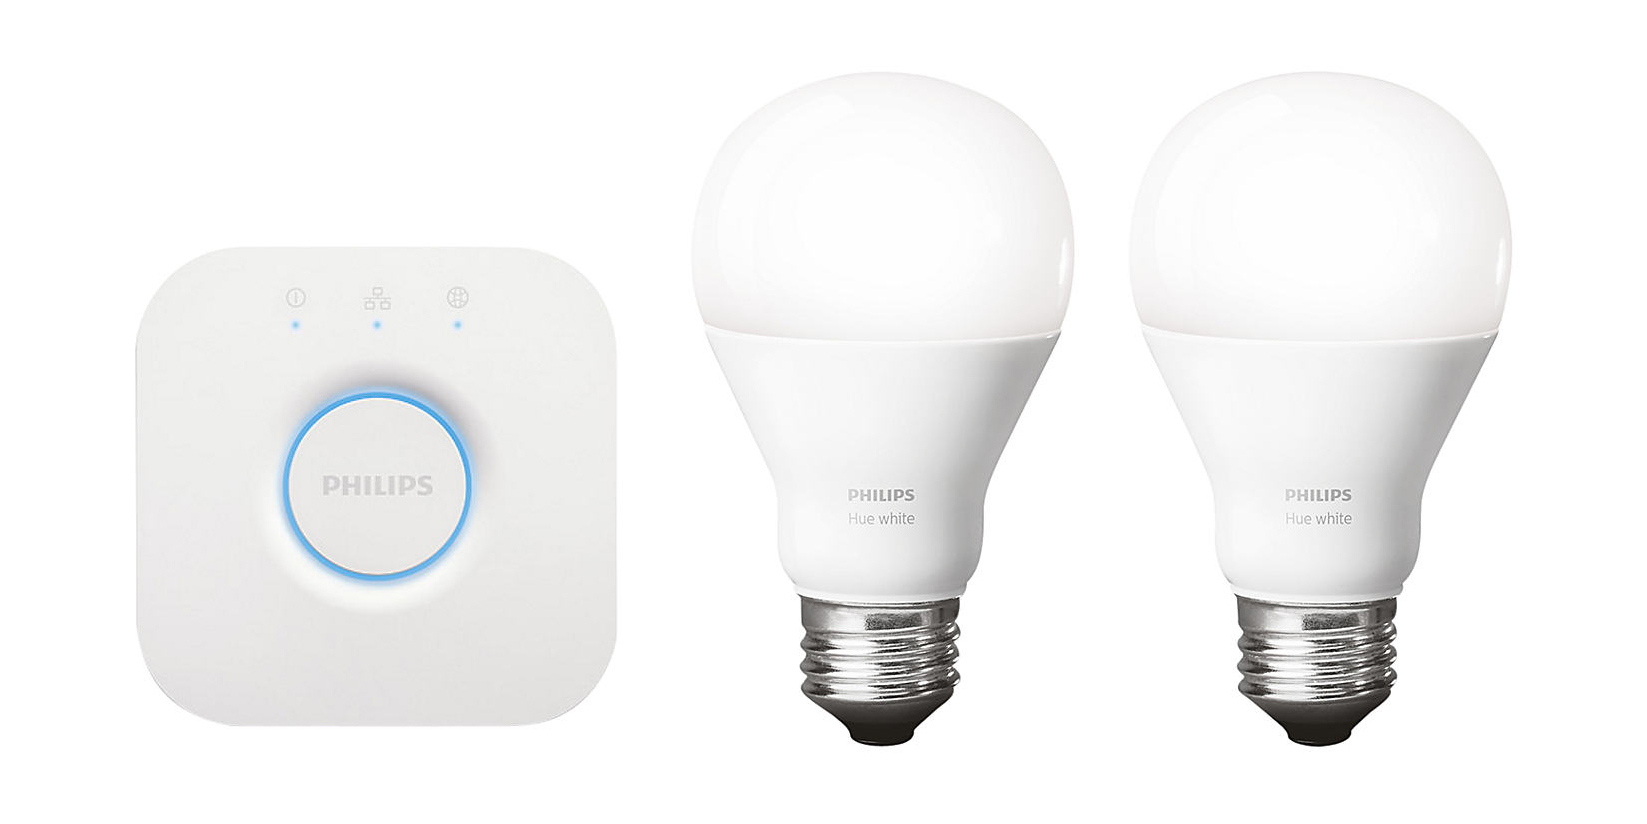 Philips Hue Examples Bring Homekit Control To Your Lights W The Philips Hue